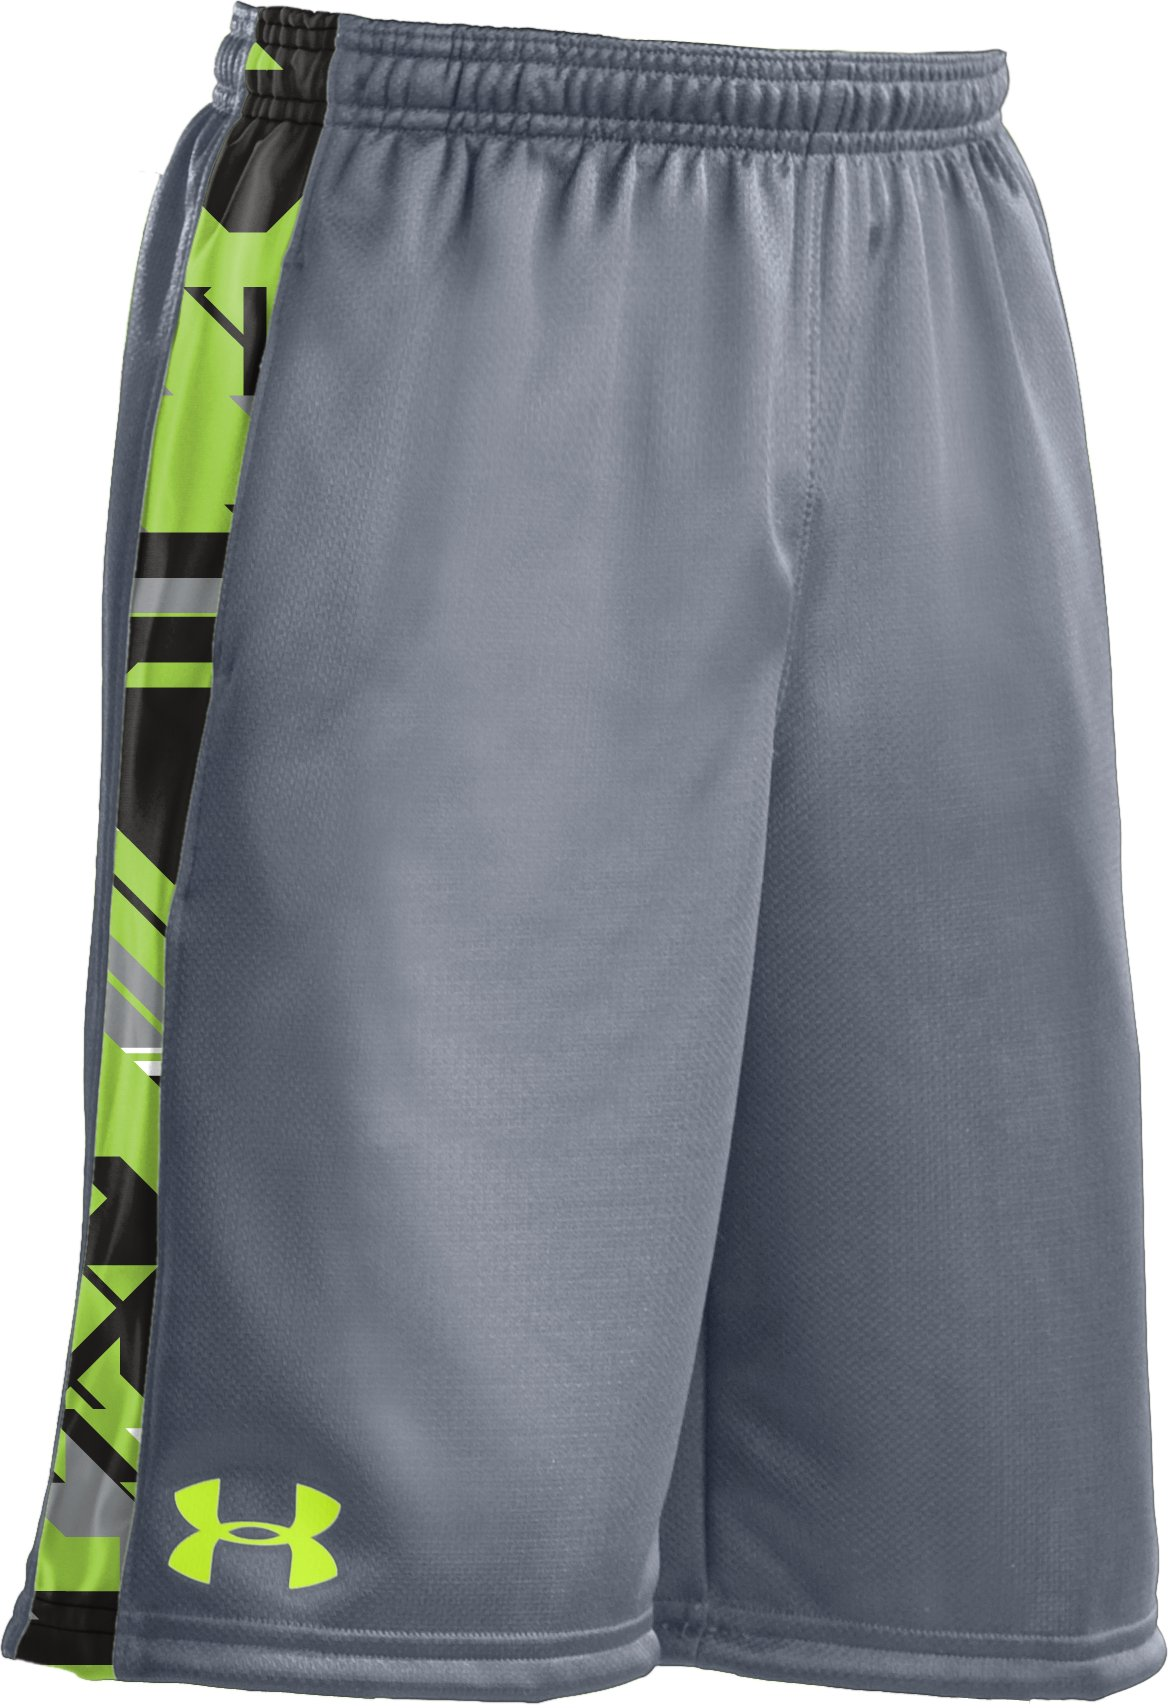 "Boys' UA Ultimate 9"" Shorts, Steel"